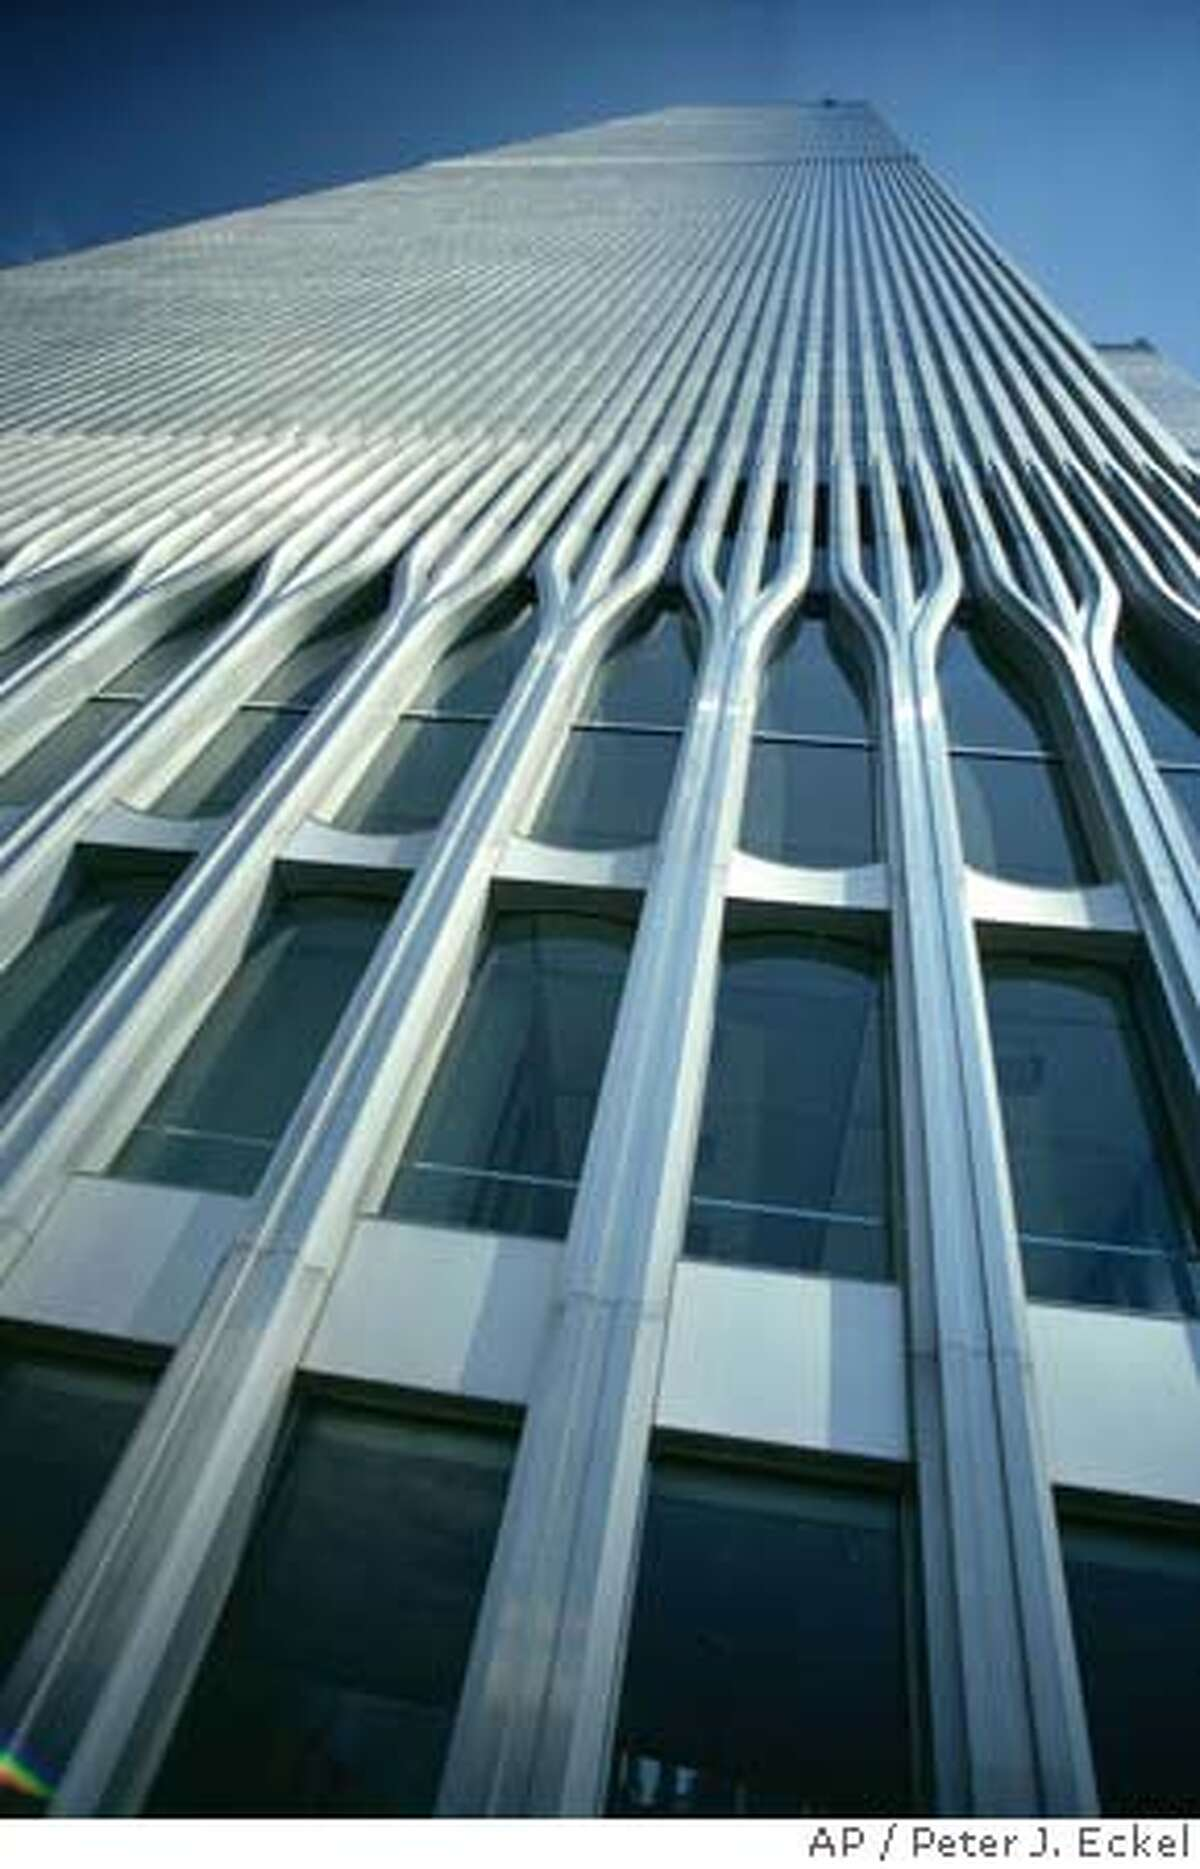 A view of the facade of the World Trade Center is shown the late 1970's. (AP Photo/Peter J. Eckel) COMMERCIAL RATES APPLY TO AP U.S. MEMBER MAGAZINES. CALL WIDE WORLD PHOTOS, NY FOR RATES. 212-621-1930 Ran on: 11-28-2004 The Great Mosque in Mecca, Saudi Arabia, has several features that have been copied in western architecture, including pointed arches, domes and minarets.. Ran on: 11-28-2004